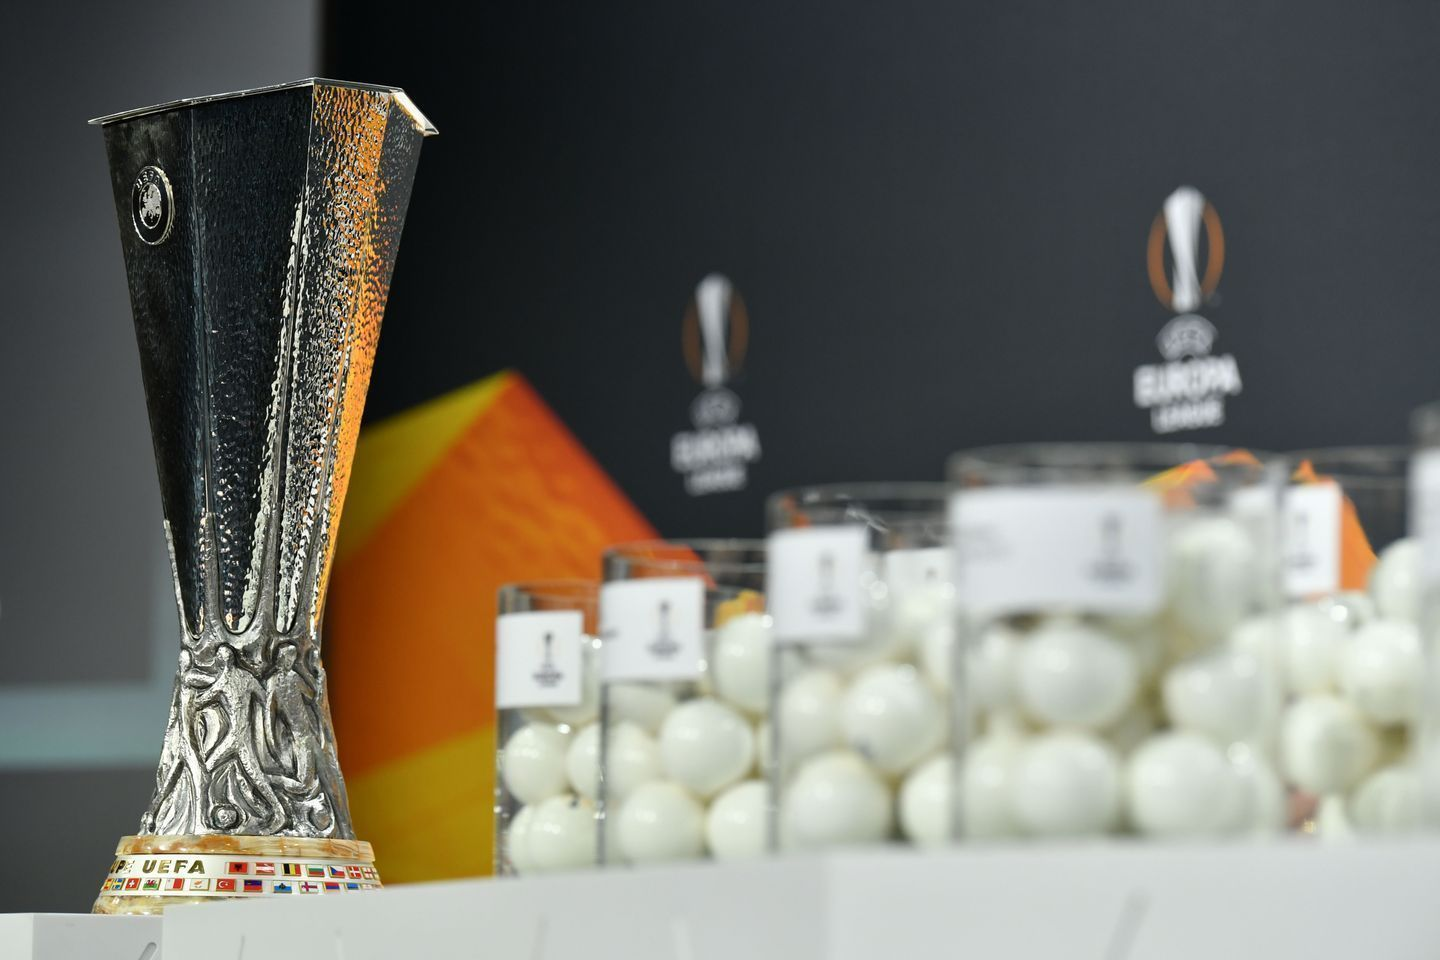 Europa League last-16 draw live: Manchester United, Arsenal, Tottenham - dates, fixtures, teams and more